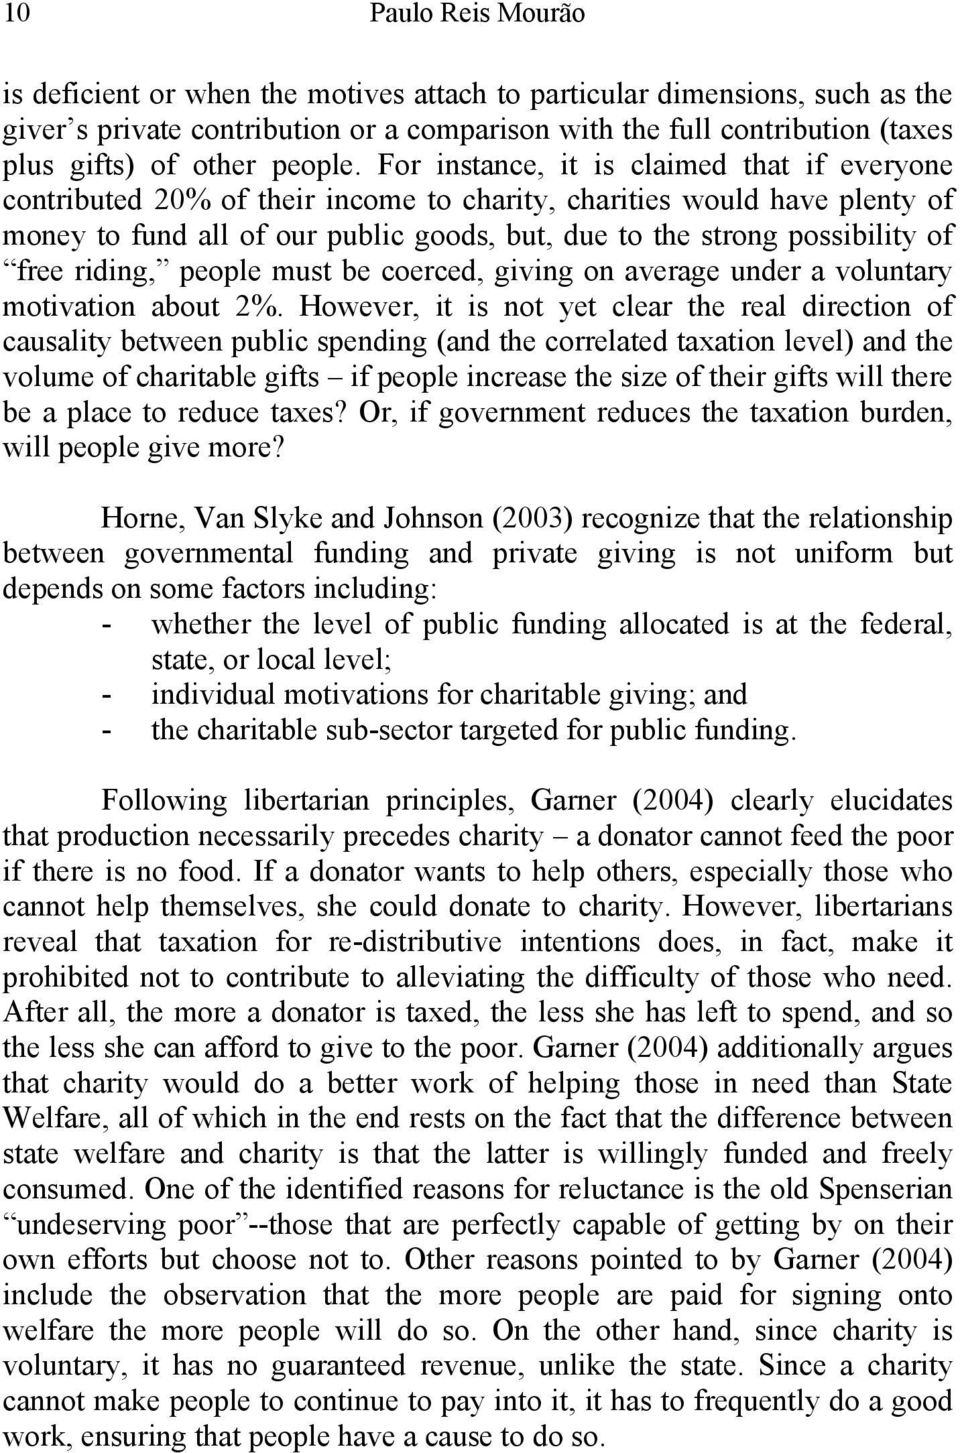 For instance, it is claimed that if everyone contributed 20% of their income to charity, charities would have plenty of money to fund all of our public goods, but, due to the strong possibility of